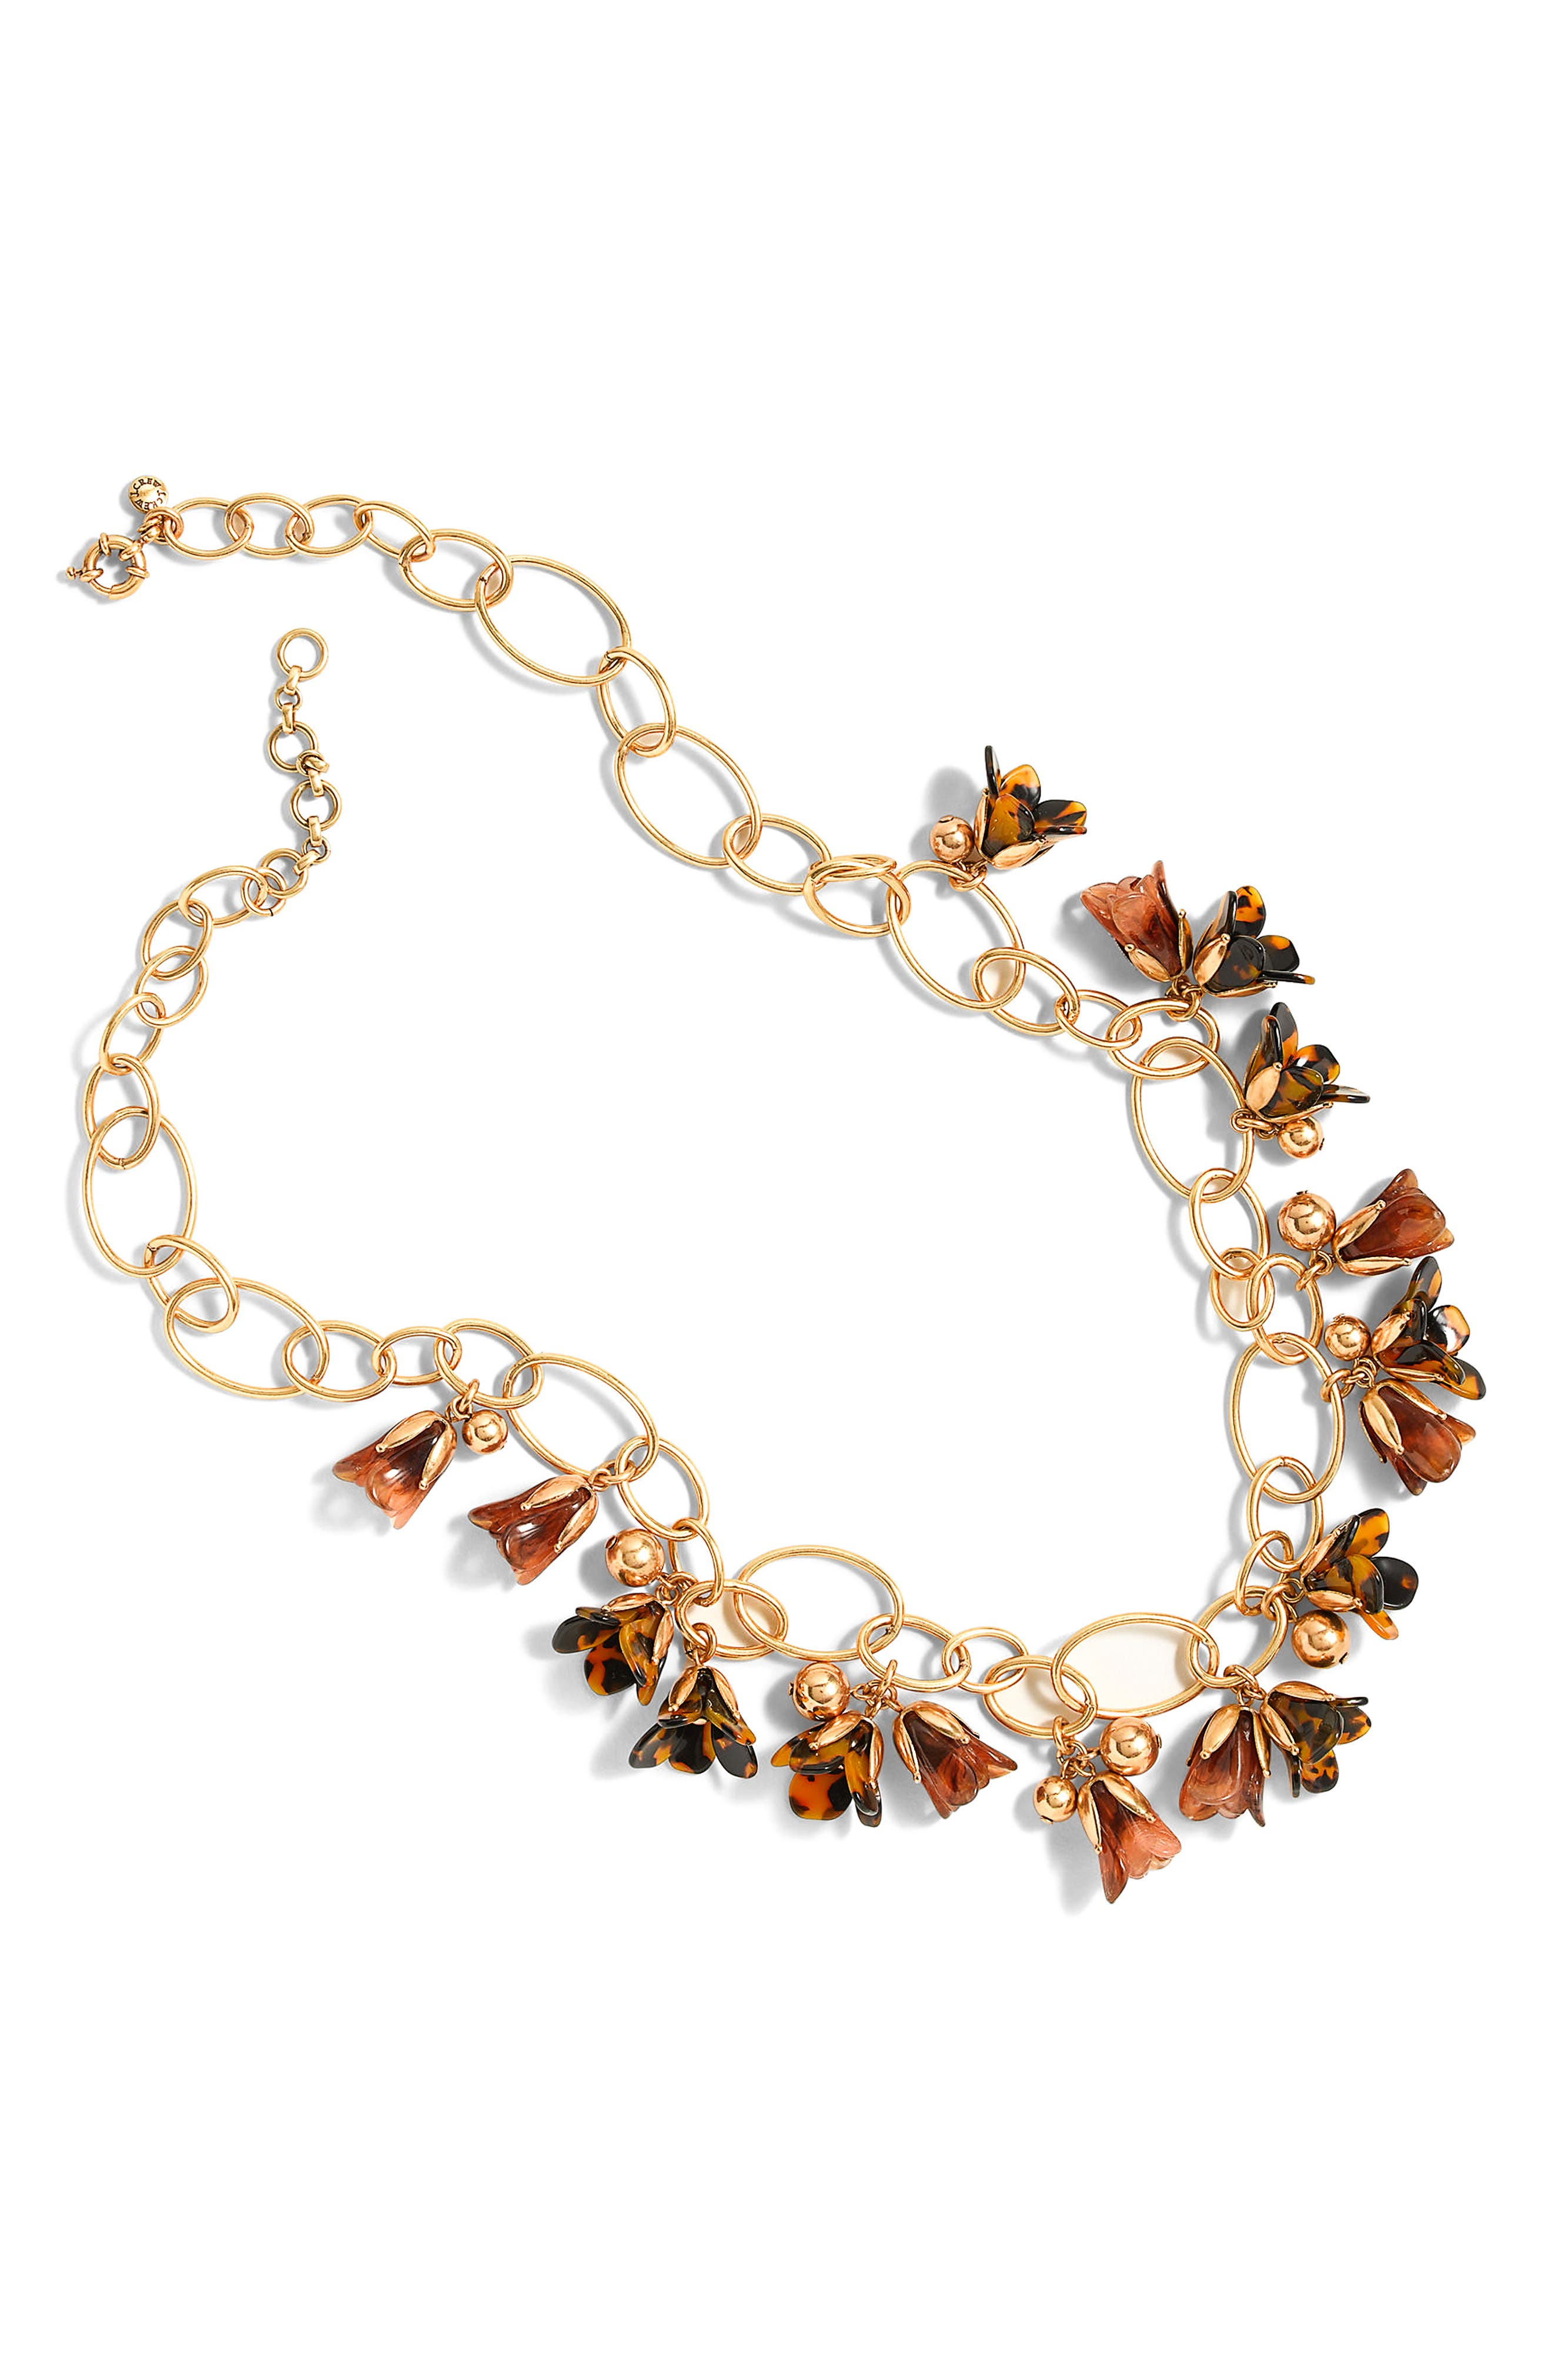 Main Image - J.Crew Magnolia Link Necklace